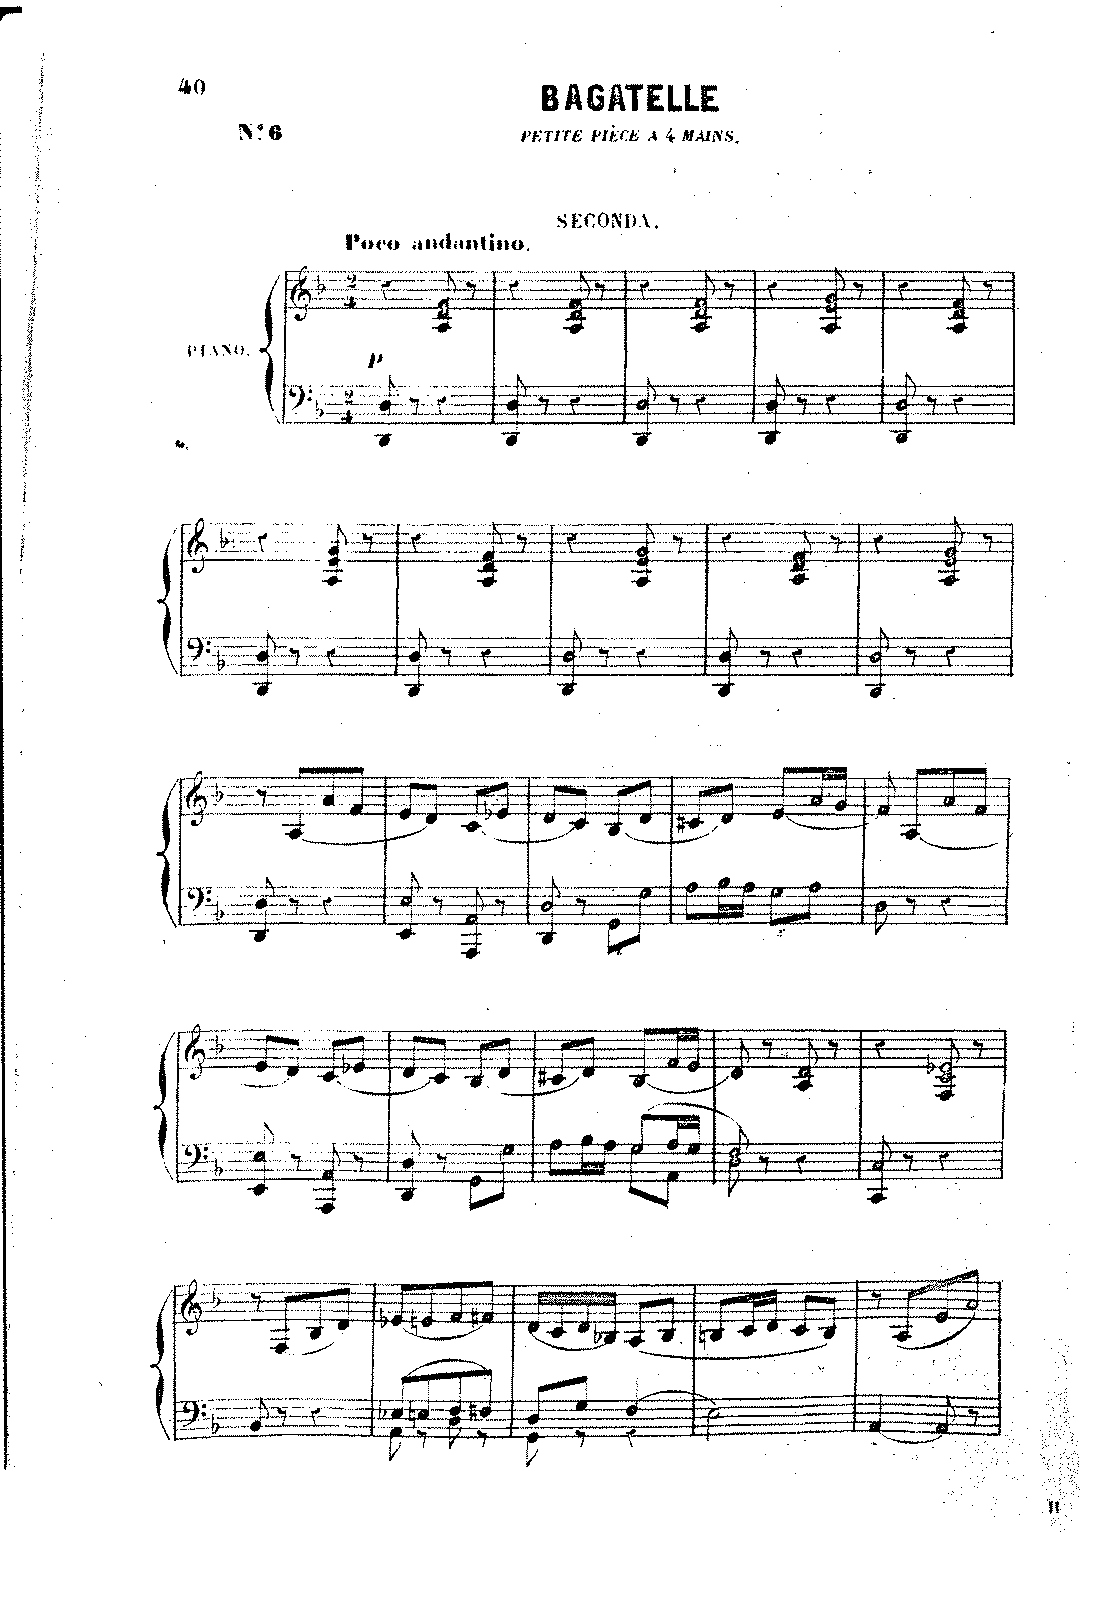 Edmond de Polignac - Bagatelle piano 4 hands.pdf